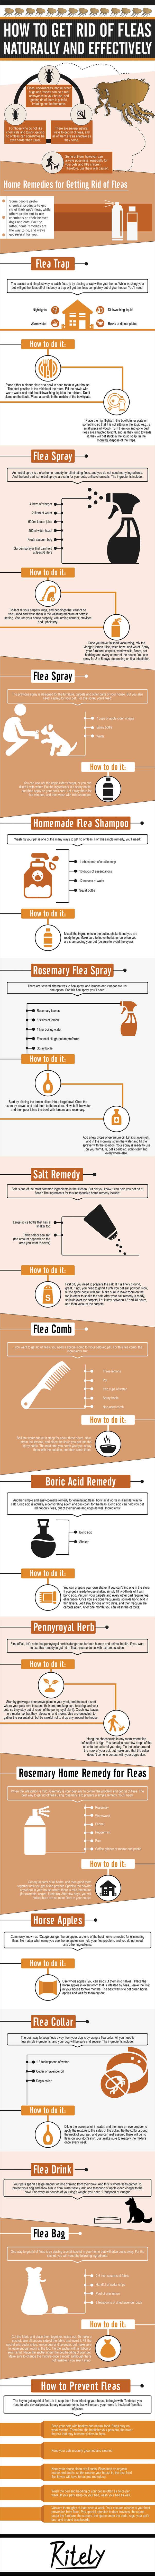 14 Best Home Remedies To Get Rid Of Fleas - Infographic